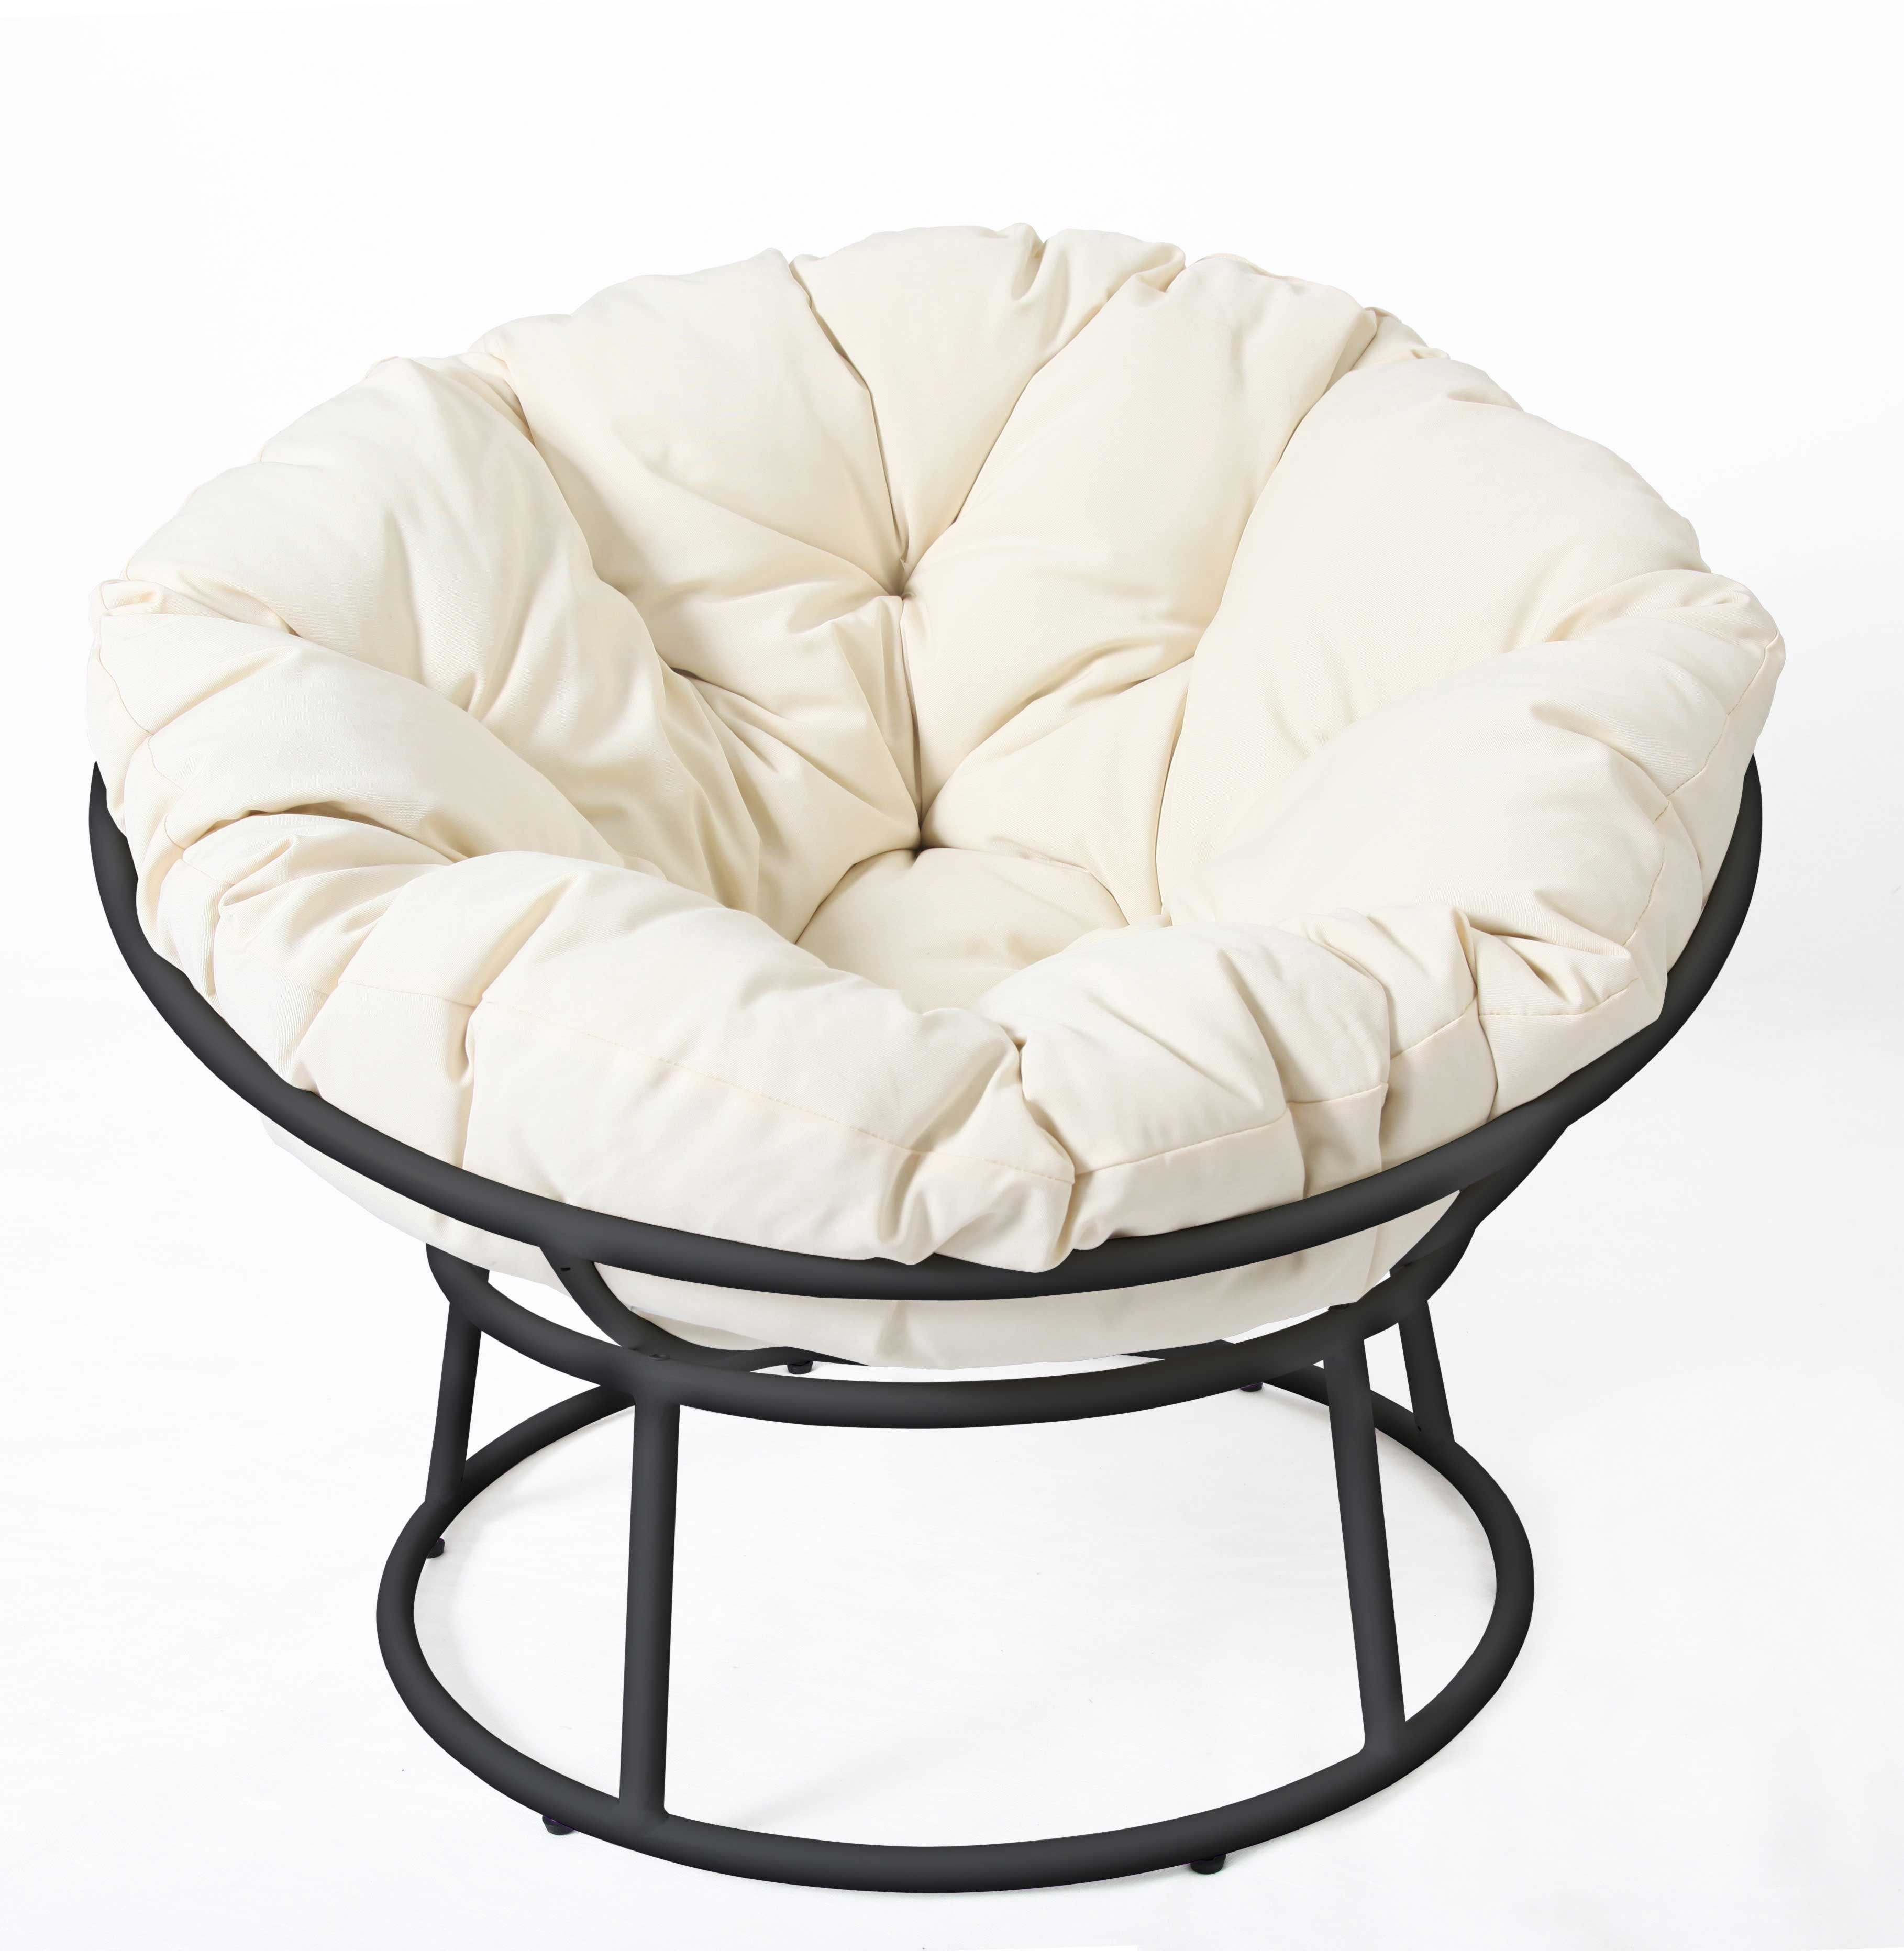 Papasan Chair Frame And Cushion | bangkokfoodietour.com